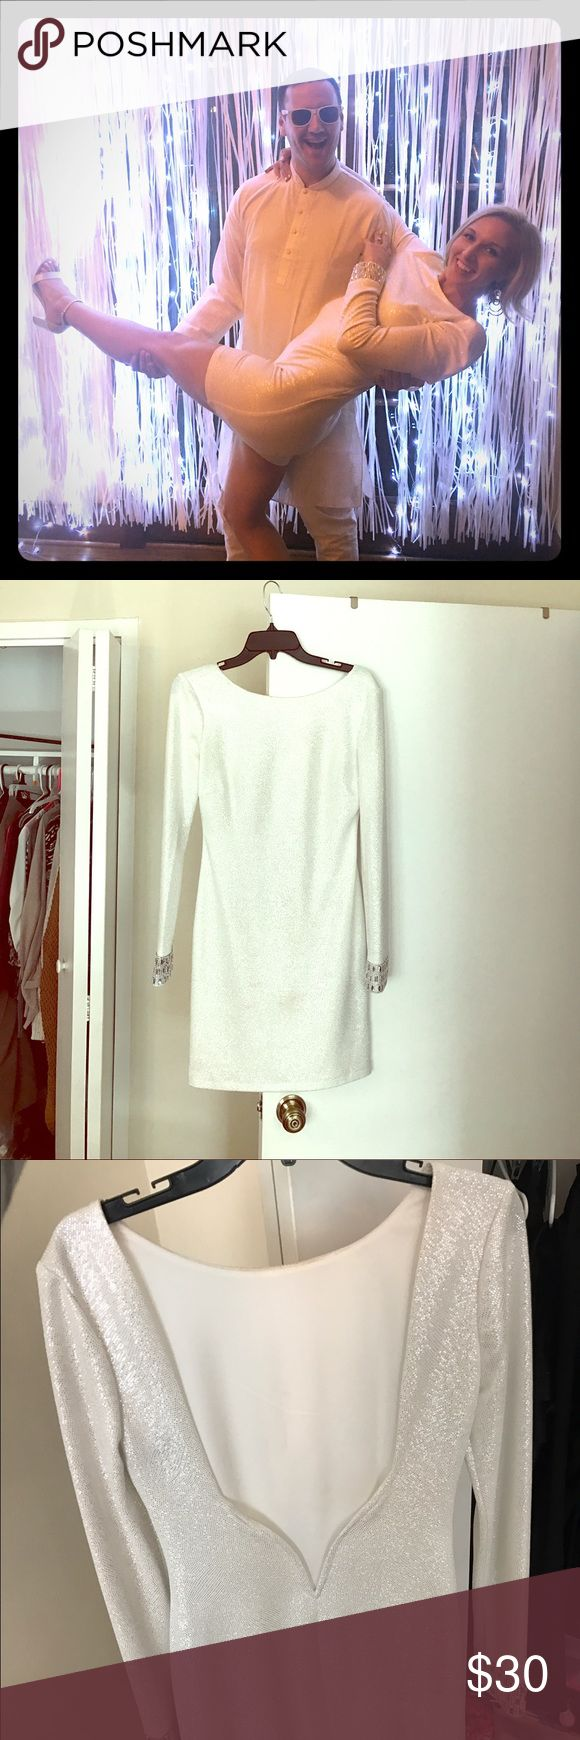 Holiday party White bodycon dress Macy's long sleeved, mid thigh length, white bodycon dress, silver gem cuffs, backless dress that is sexy but still classy. Worn once for an all white themed New Years party, received many compliments. Dry cleaned after worn. I am 5'9, 145 lbs and it fit perfect Macy's Dresses Midi